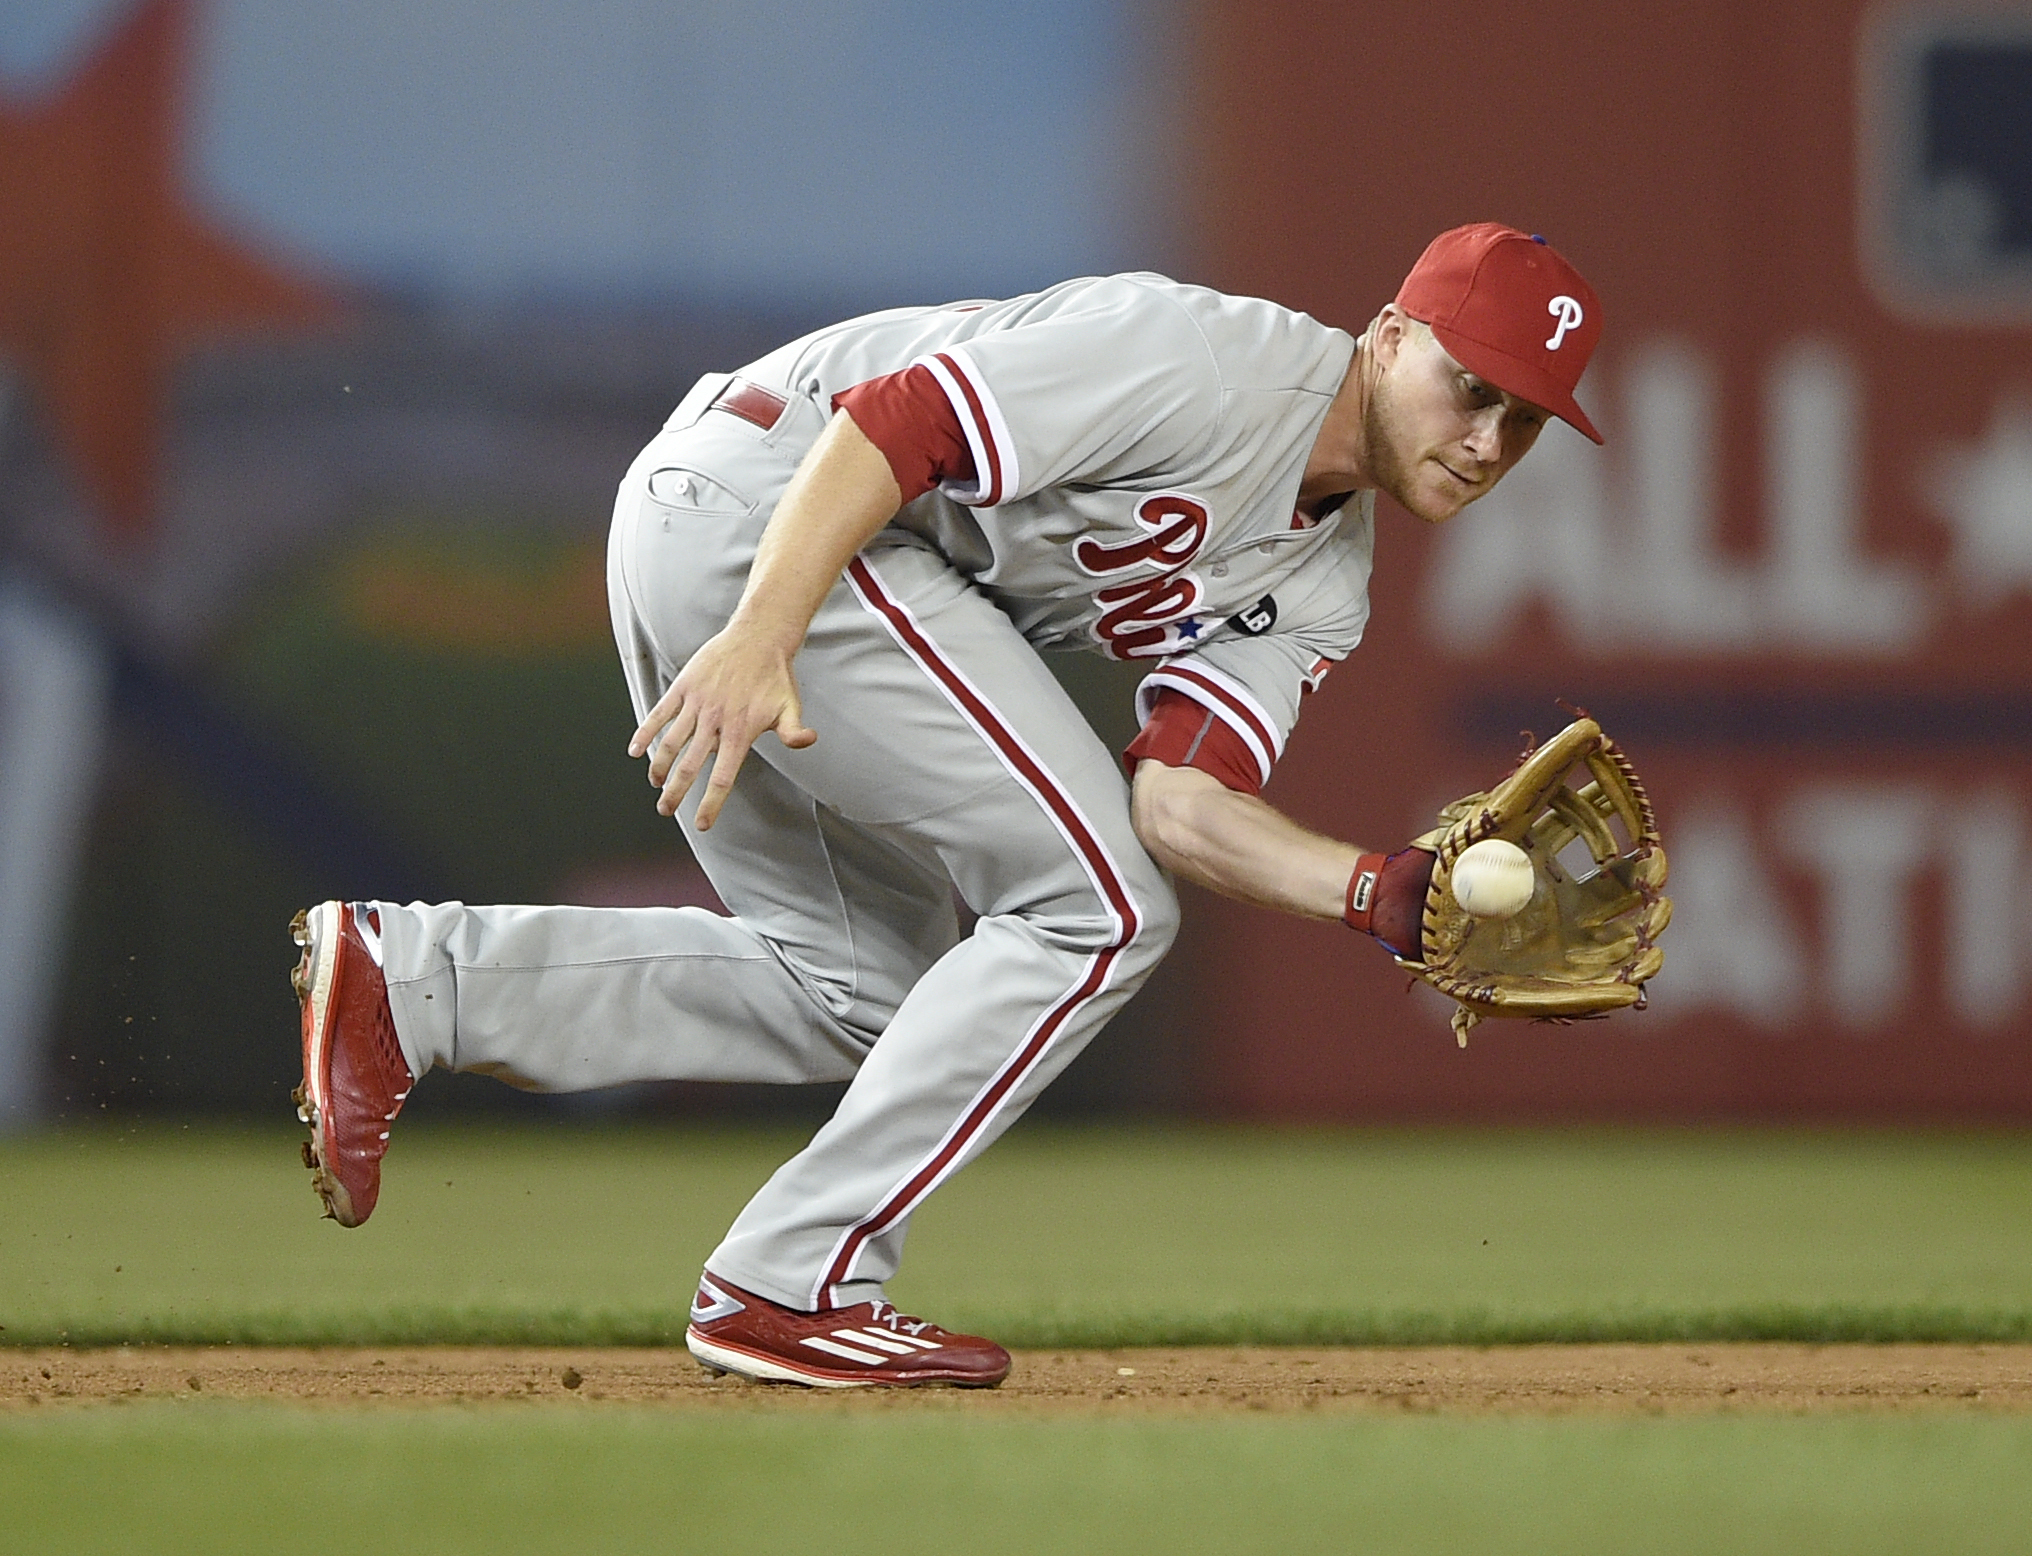 Philadelphia Phillies third baseman Cody Asche (25) fields a ball hit by Washington Nationals' Ian Desmond who reached first on a throwing error by Asche on the play during the fifth inning of a baseball game, Friday, April 17, 2015, in Washington. (AP Ph